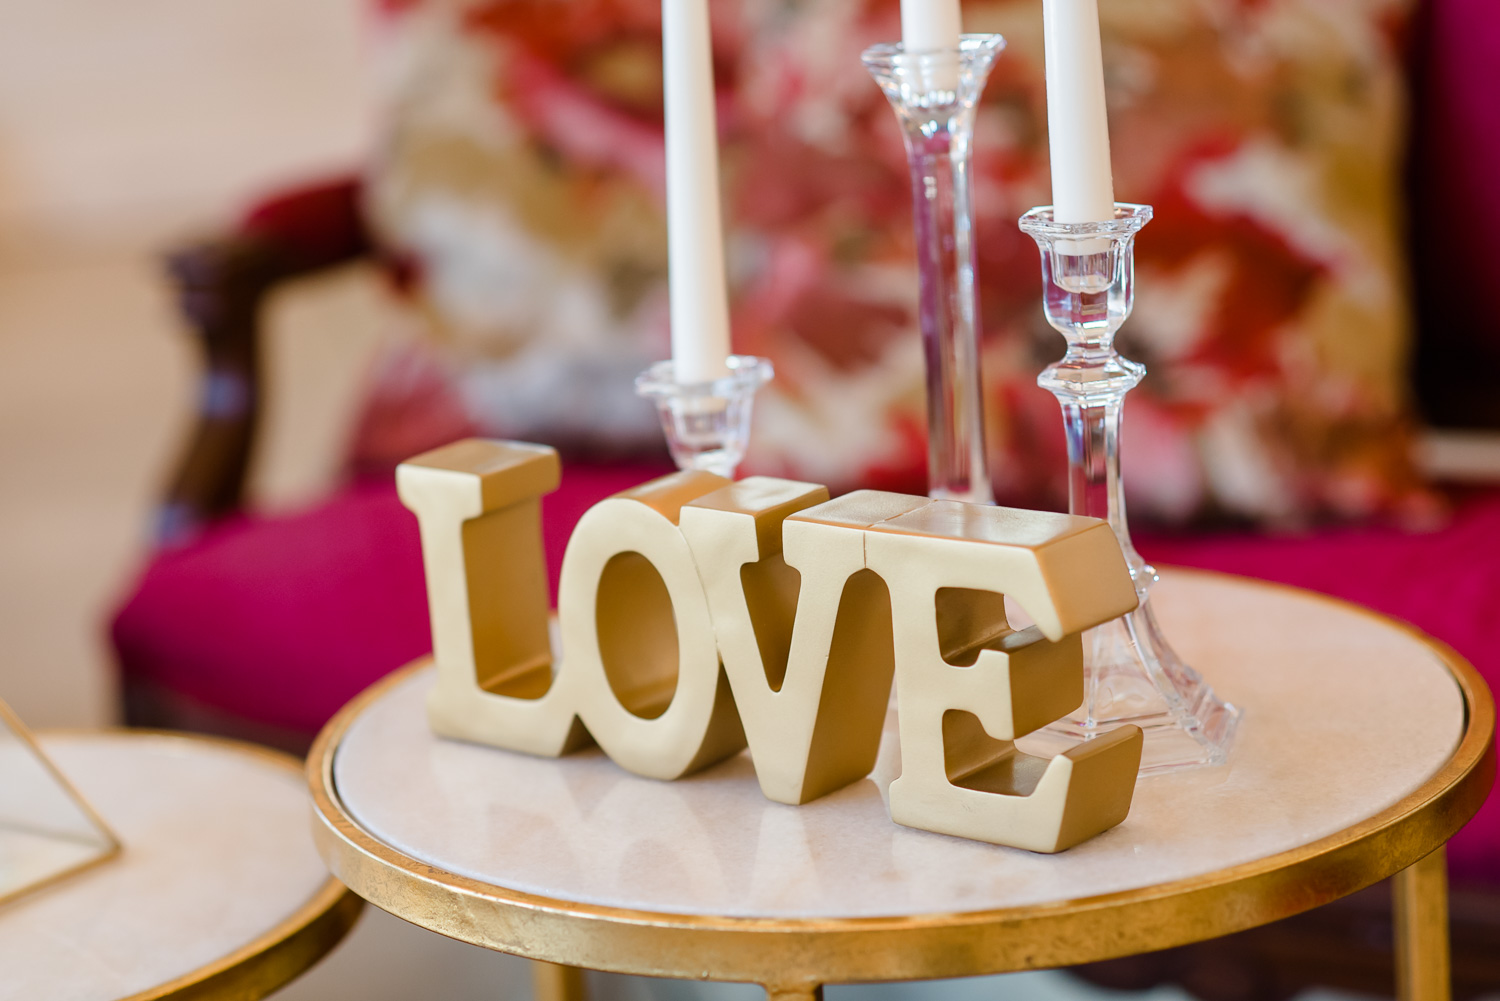 gold block decor letters spelling out LOVE and tall clear glass candle stick holders